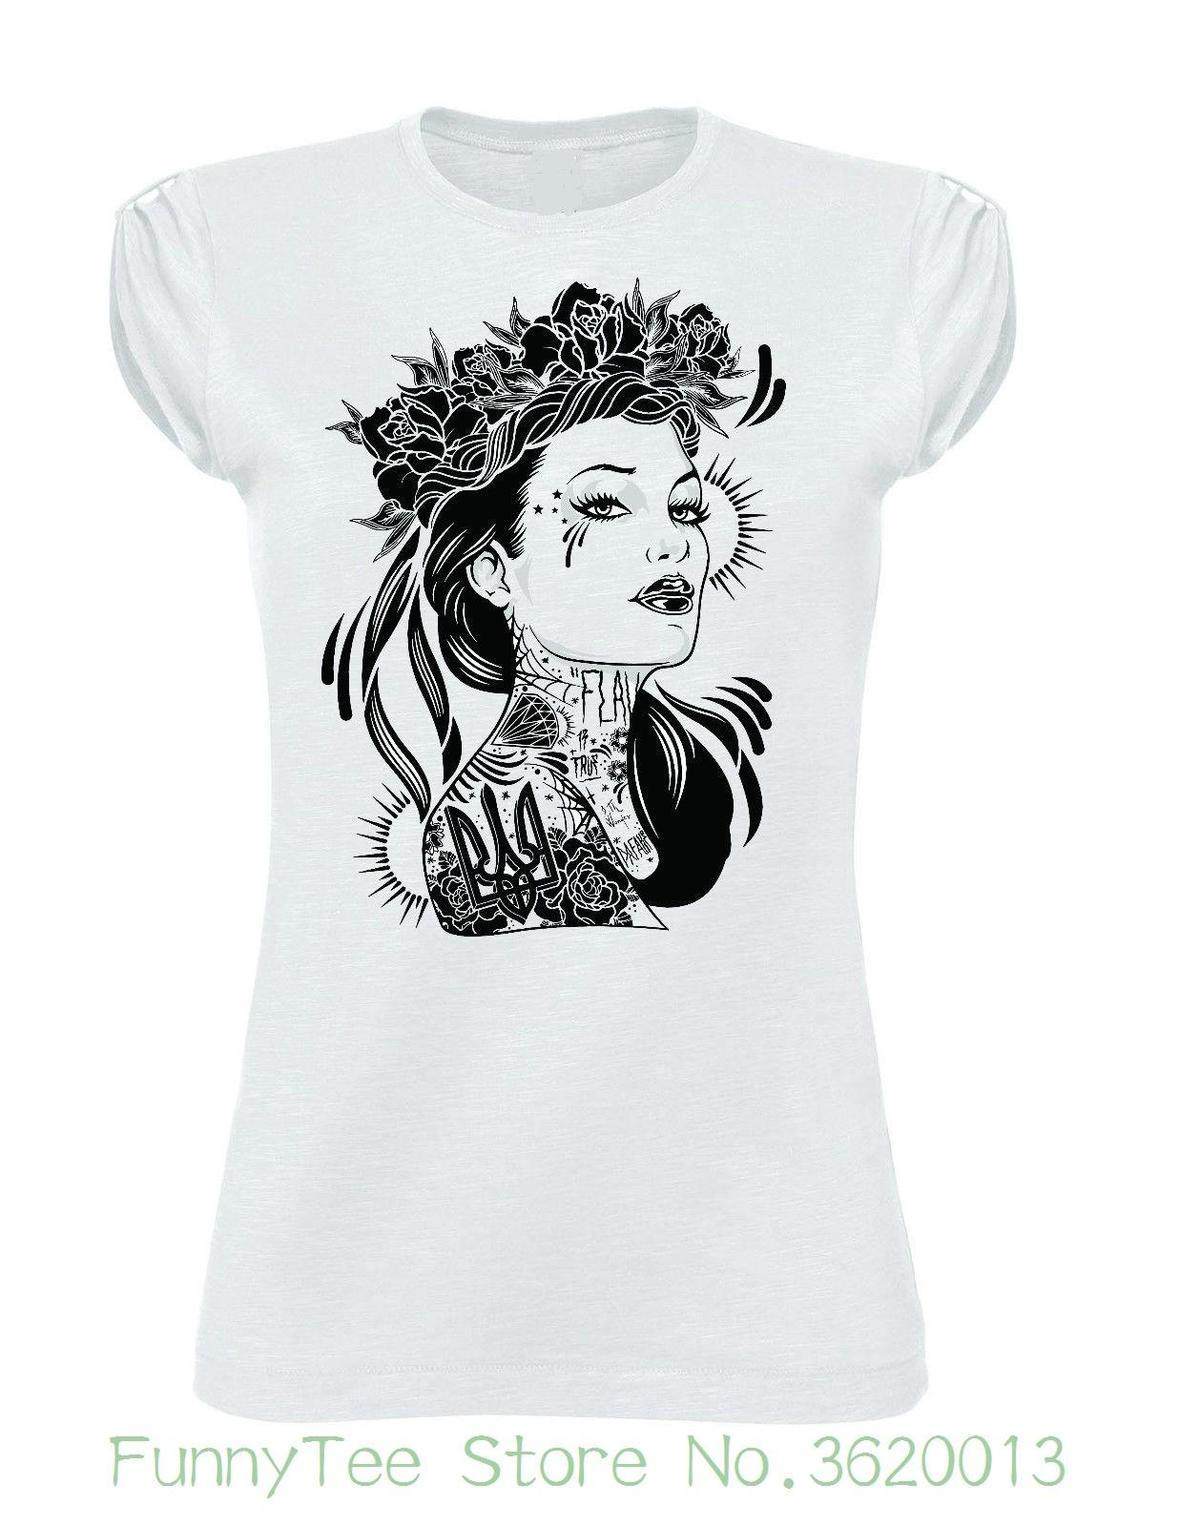 buy online fd65a 5ceae Women s Tee Tshirt Donna Girl Tattoo Rose Moda Fashion No Happiness 8th  Wonder Printed Funny T-shirt Hip Hop Cotton